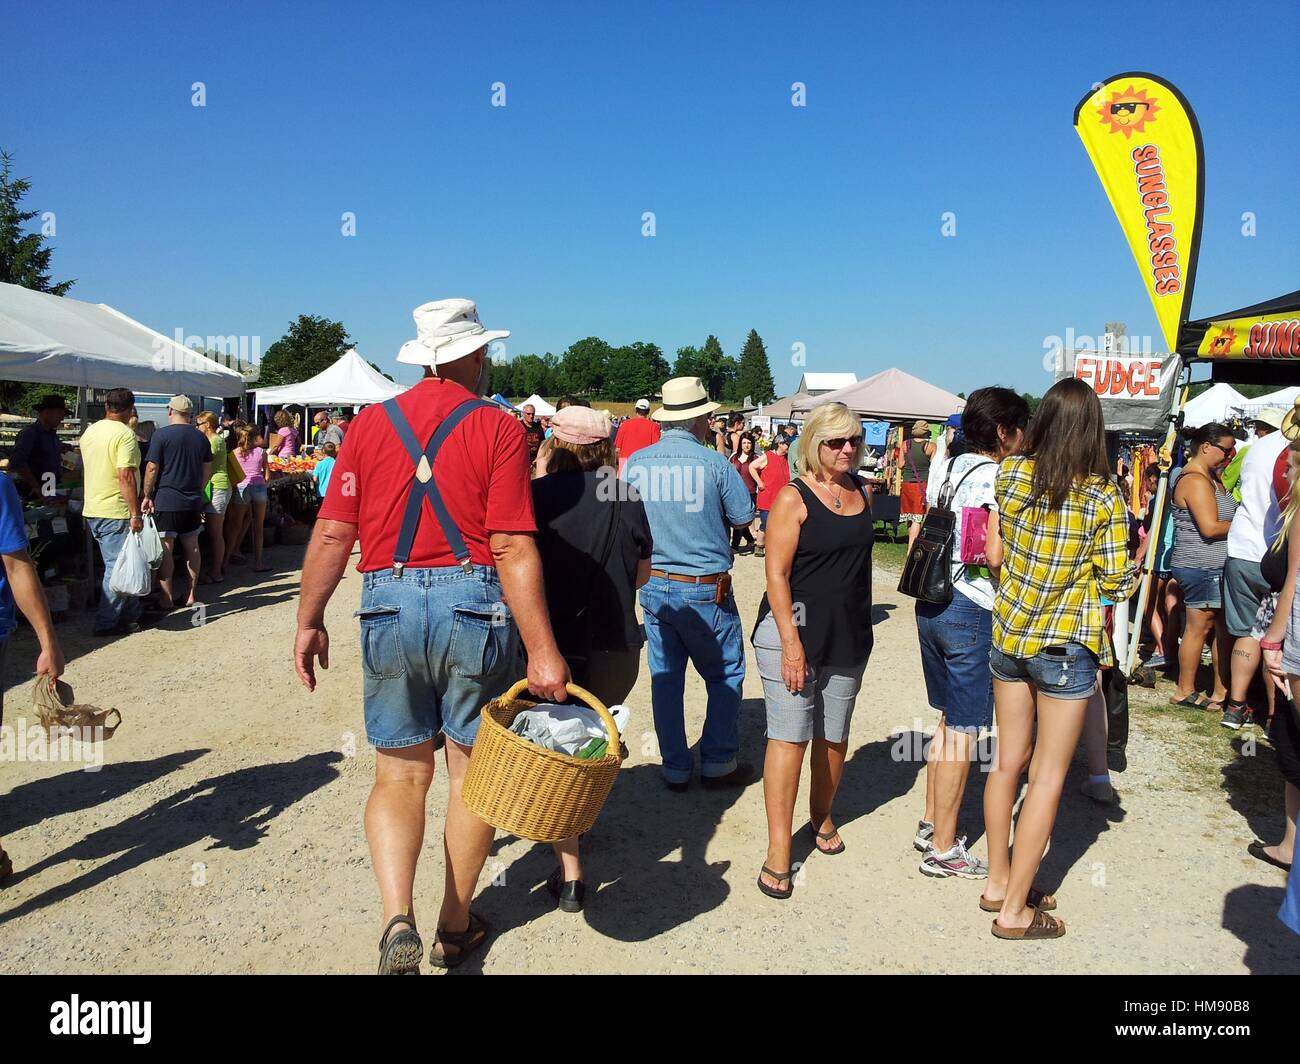 A man with suspenders, a red shirt and short pants carries a basket through a crowd of people at a weekly market Stock Photo